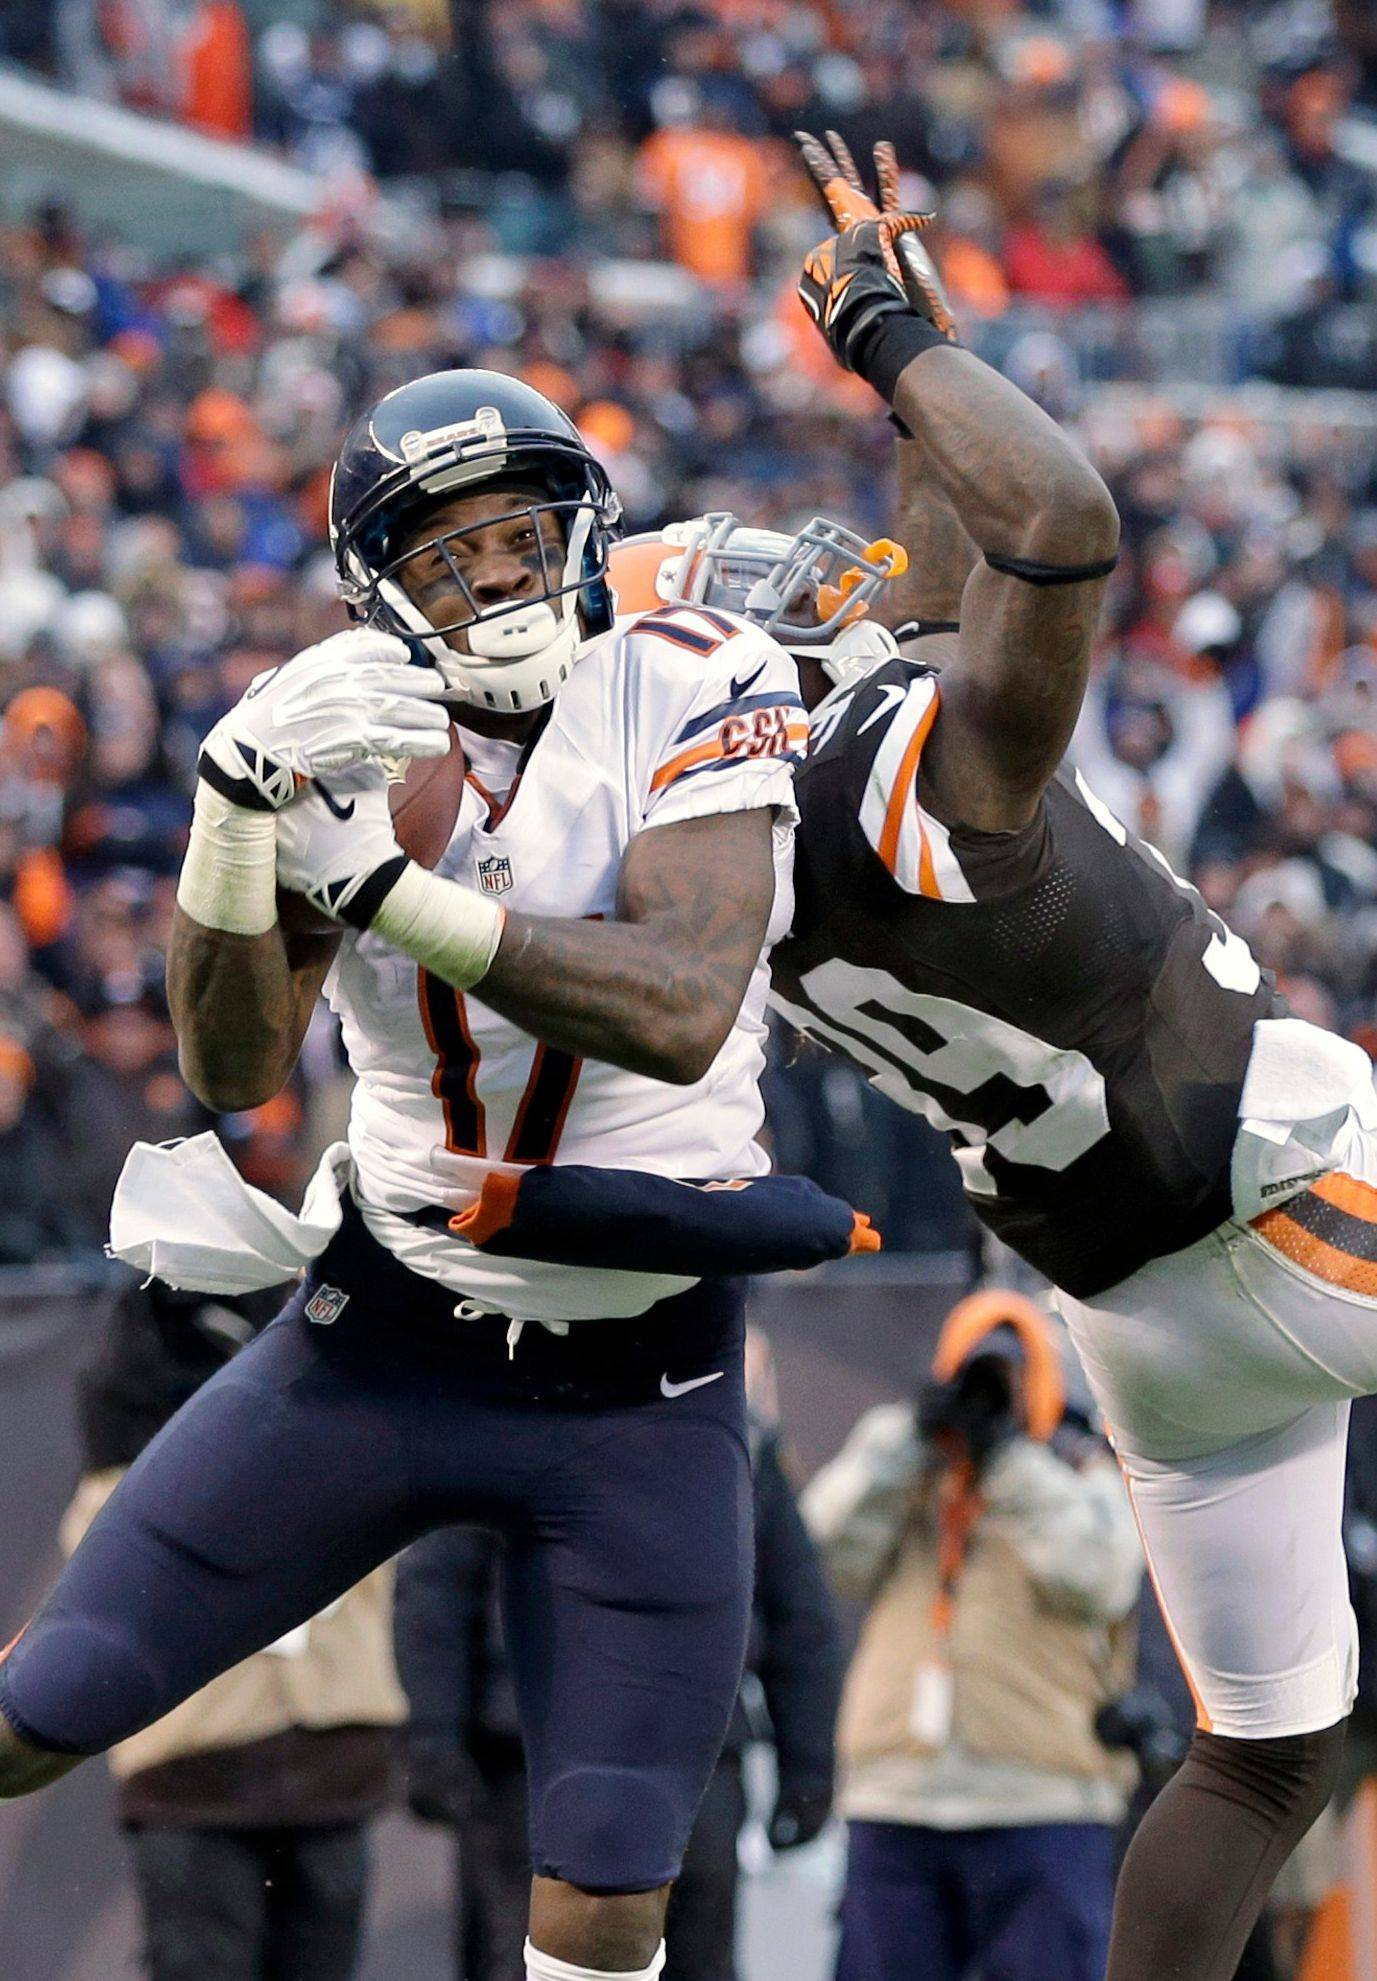 Bears wide receiver Alshon Jeffery catches a 45-yard touchdown pass at the goal line against Browns safety Tashaun Gipson in the fourth quarter Sunday.